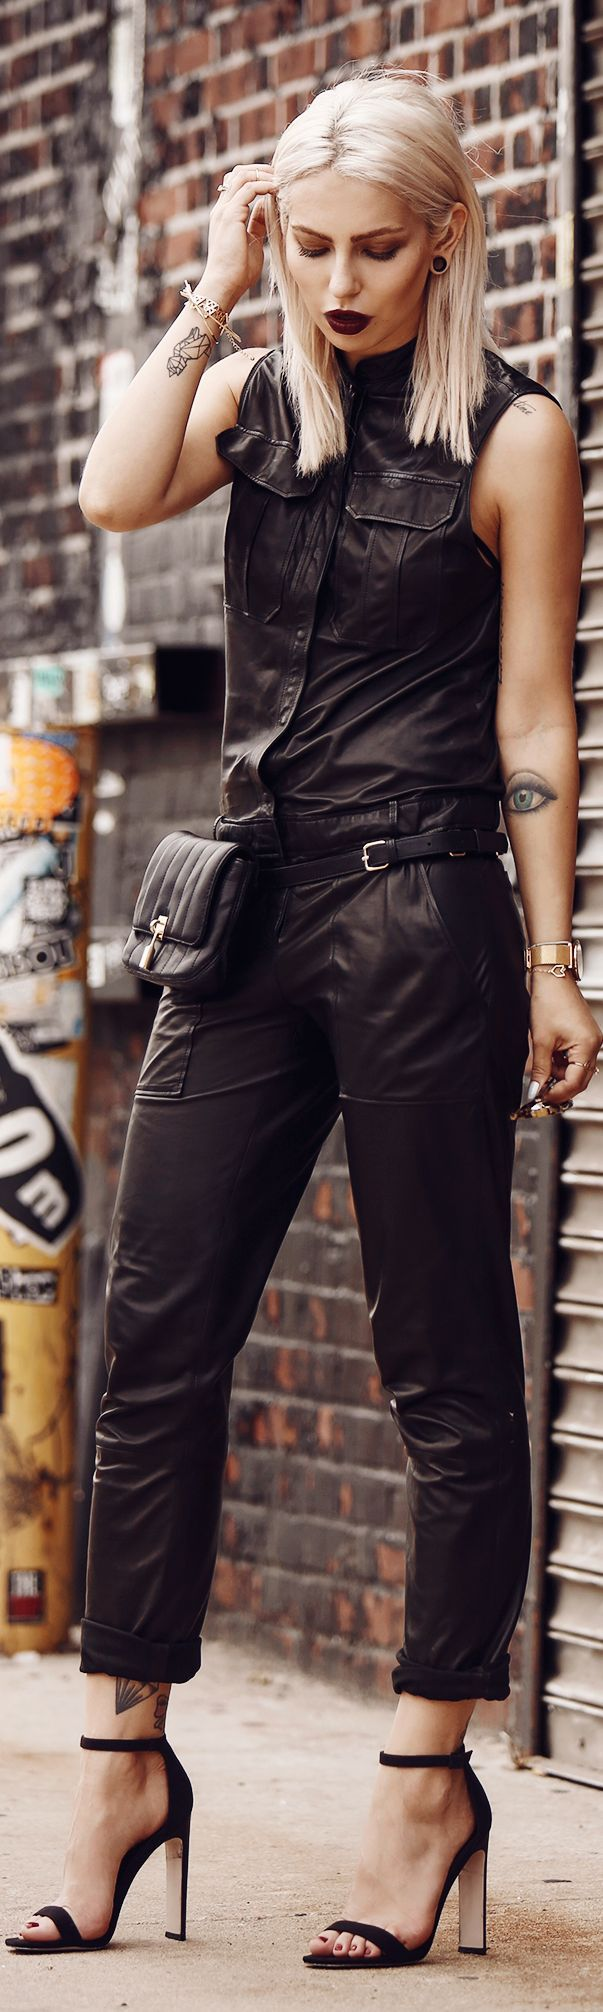 206 best Leather Catsuits Overalls images on Pinterest | Leather ...